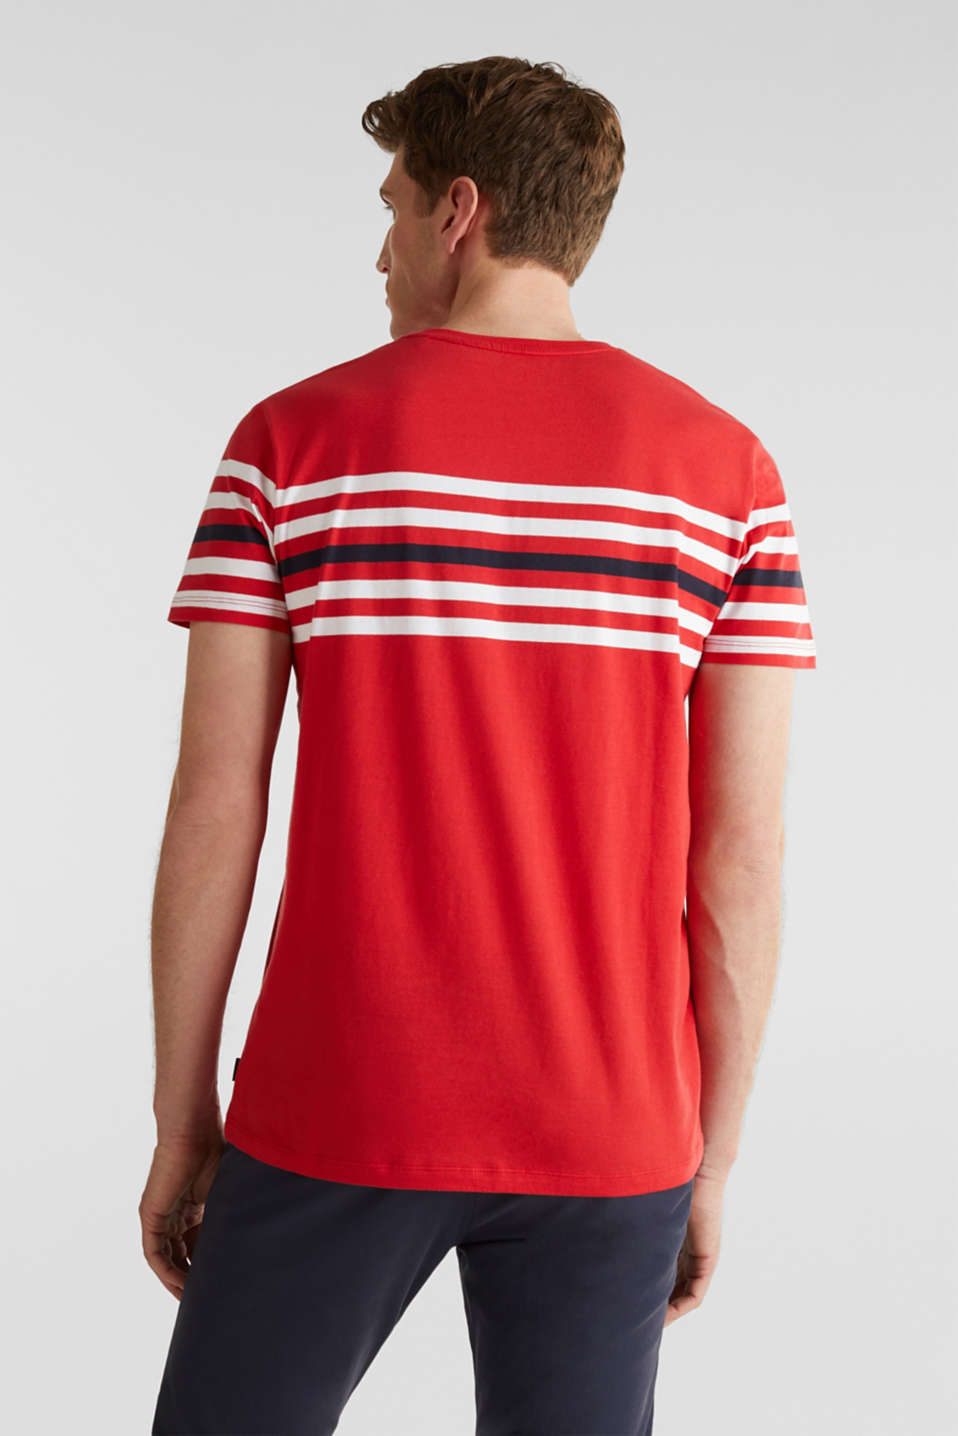 Jersey T-shirt with stripes, 100% cotton, RED 3, detail image number 2